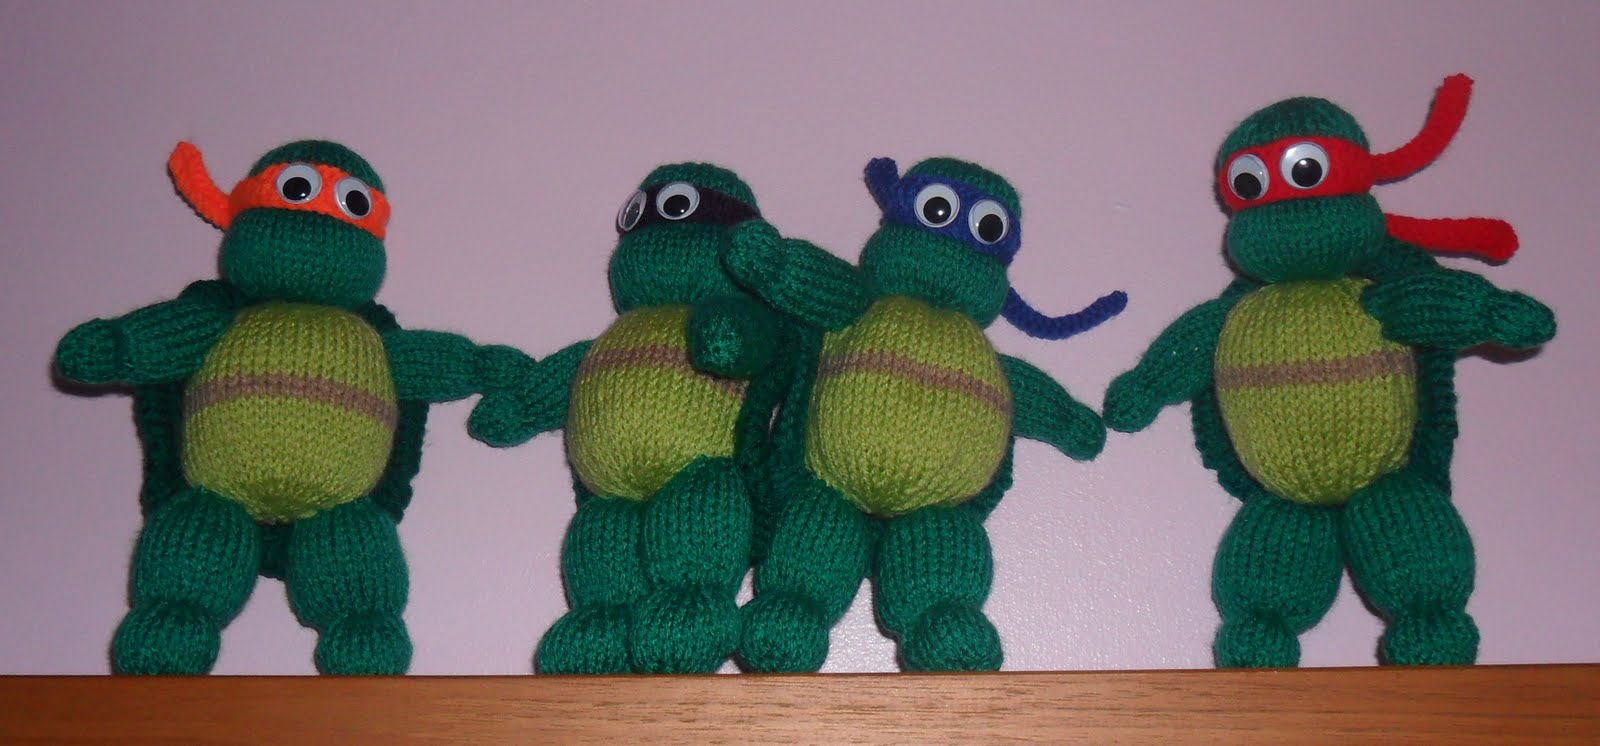 Knitting Pattern For Ninja Turtles : Busy Crafting...: Teenage Mutant Ninja Turtles Knitting ...